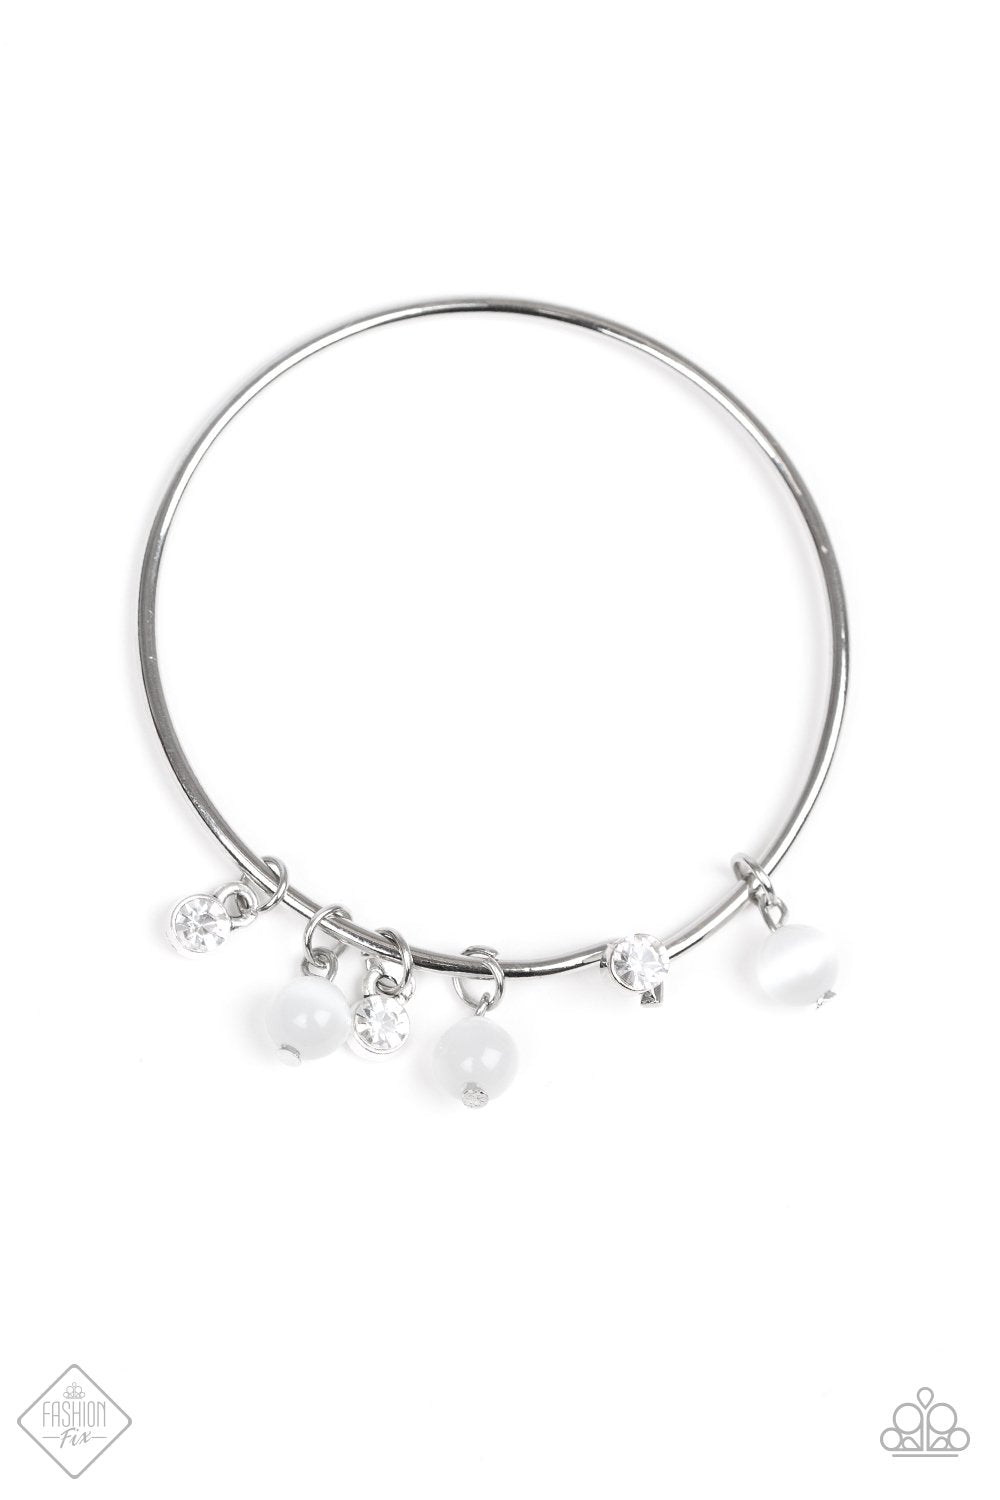 Paparazzi Marine Melody - White Bracelet - Be Adored Jewelry